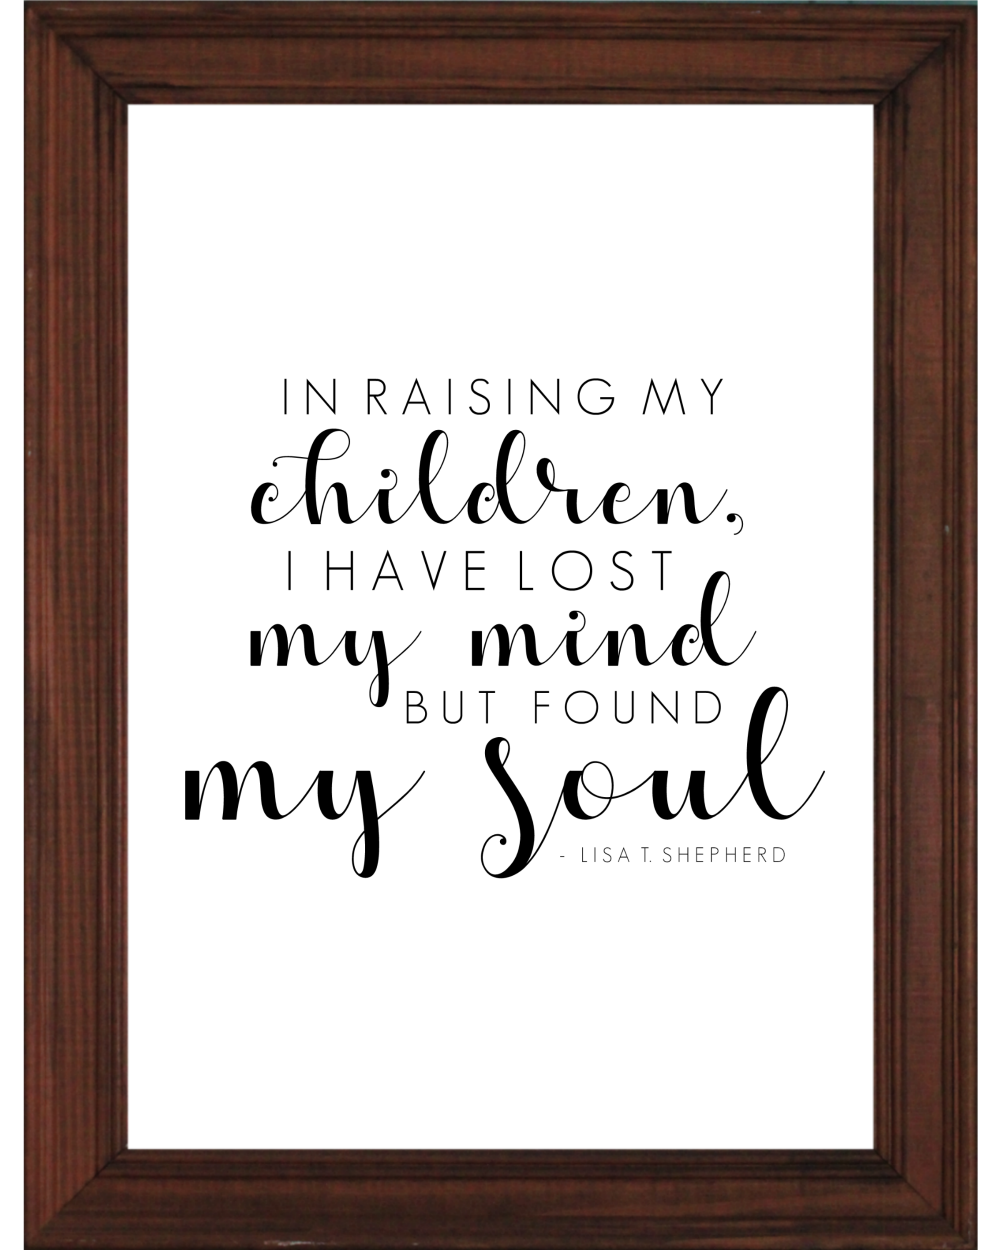 Found My Soul || Monthly Free Printable || A Dash of Salter || Motherhood. In raising my children, I have lost my mind but found my soul. Lisa T. Shepherd. Print Freebie